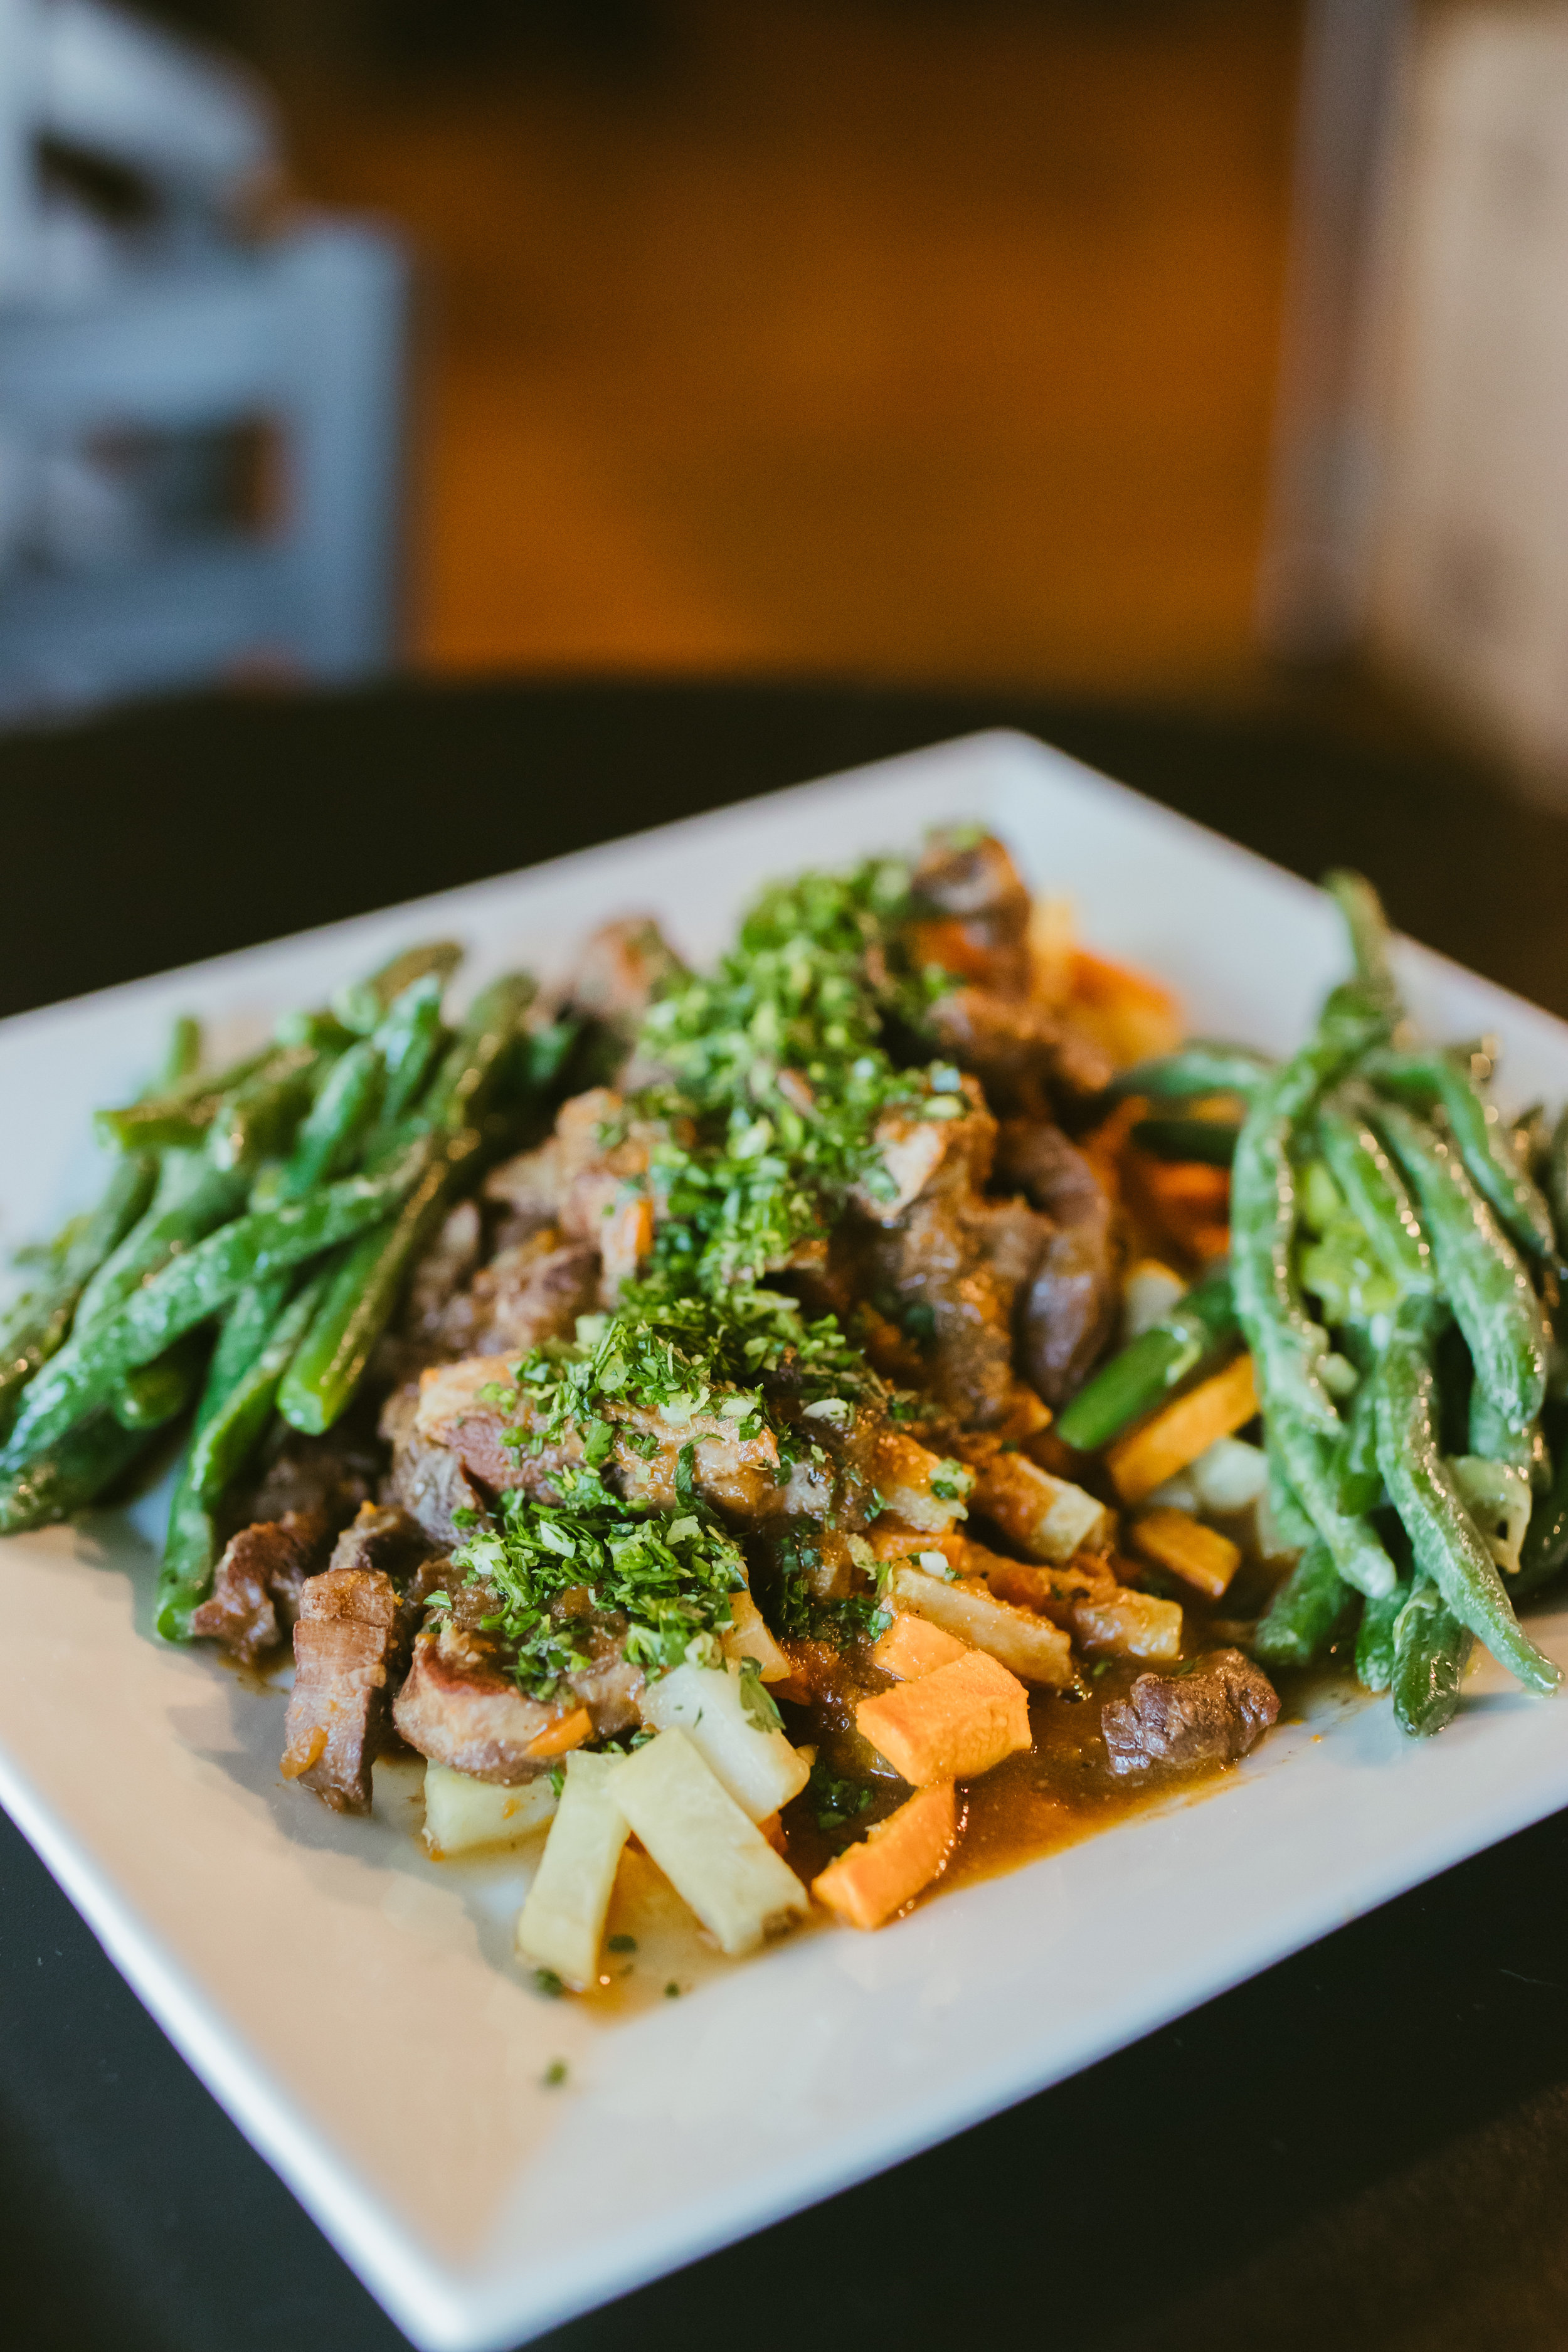 Braised beef shanks with roasted root vegetables and green beans